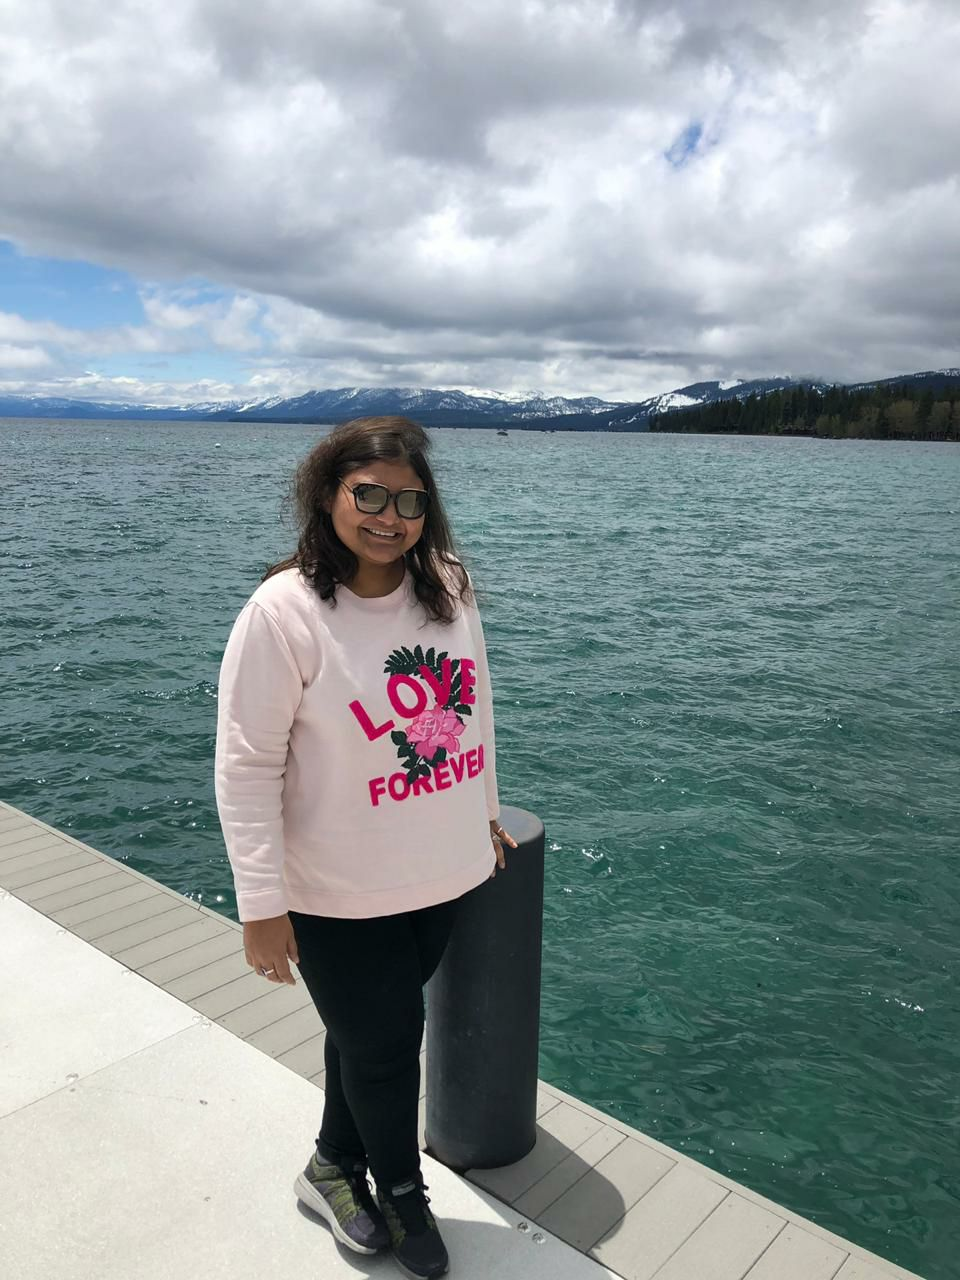 Tahoe – A Road trip filled with memories